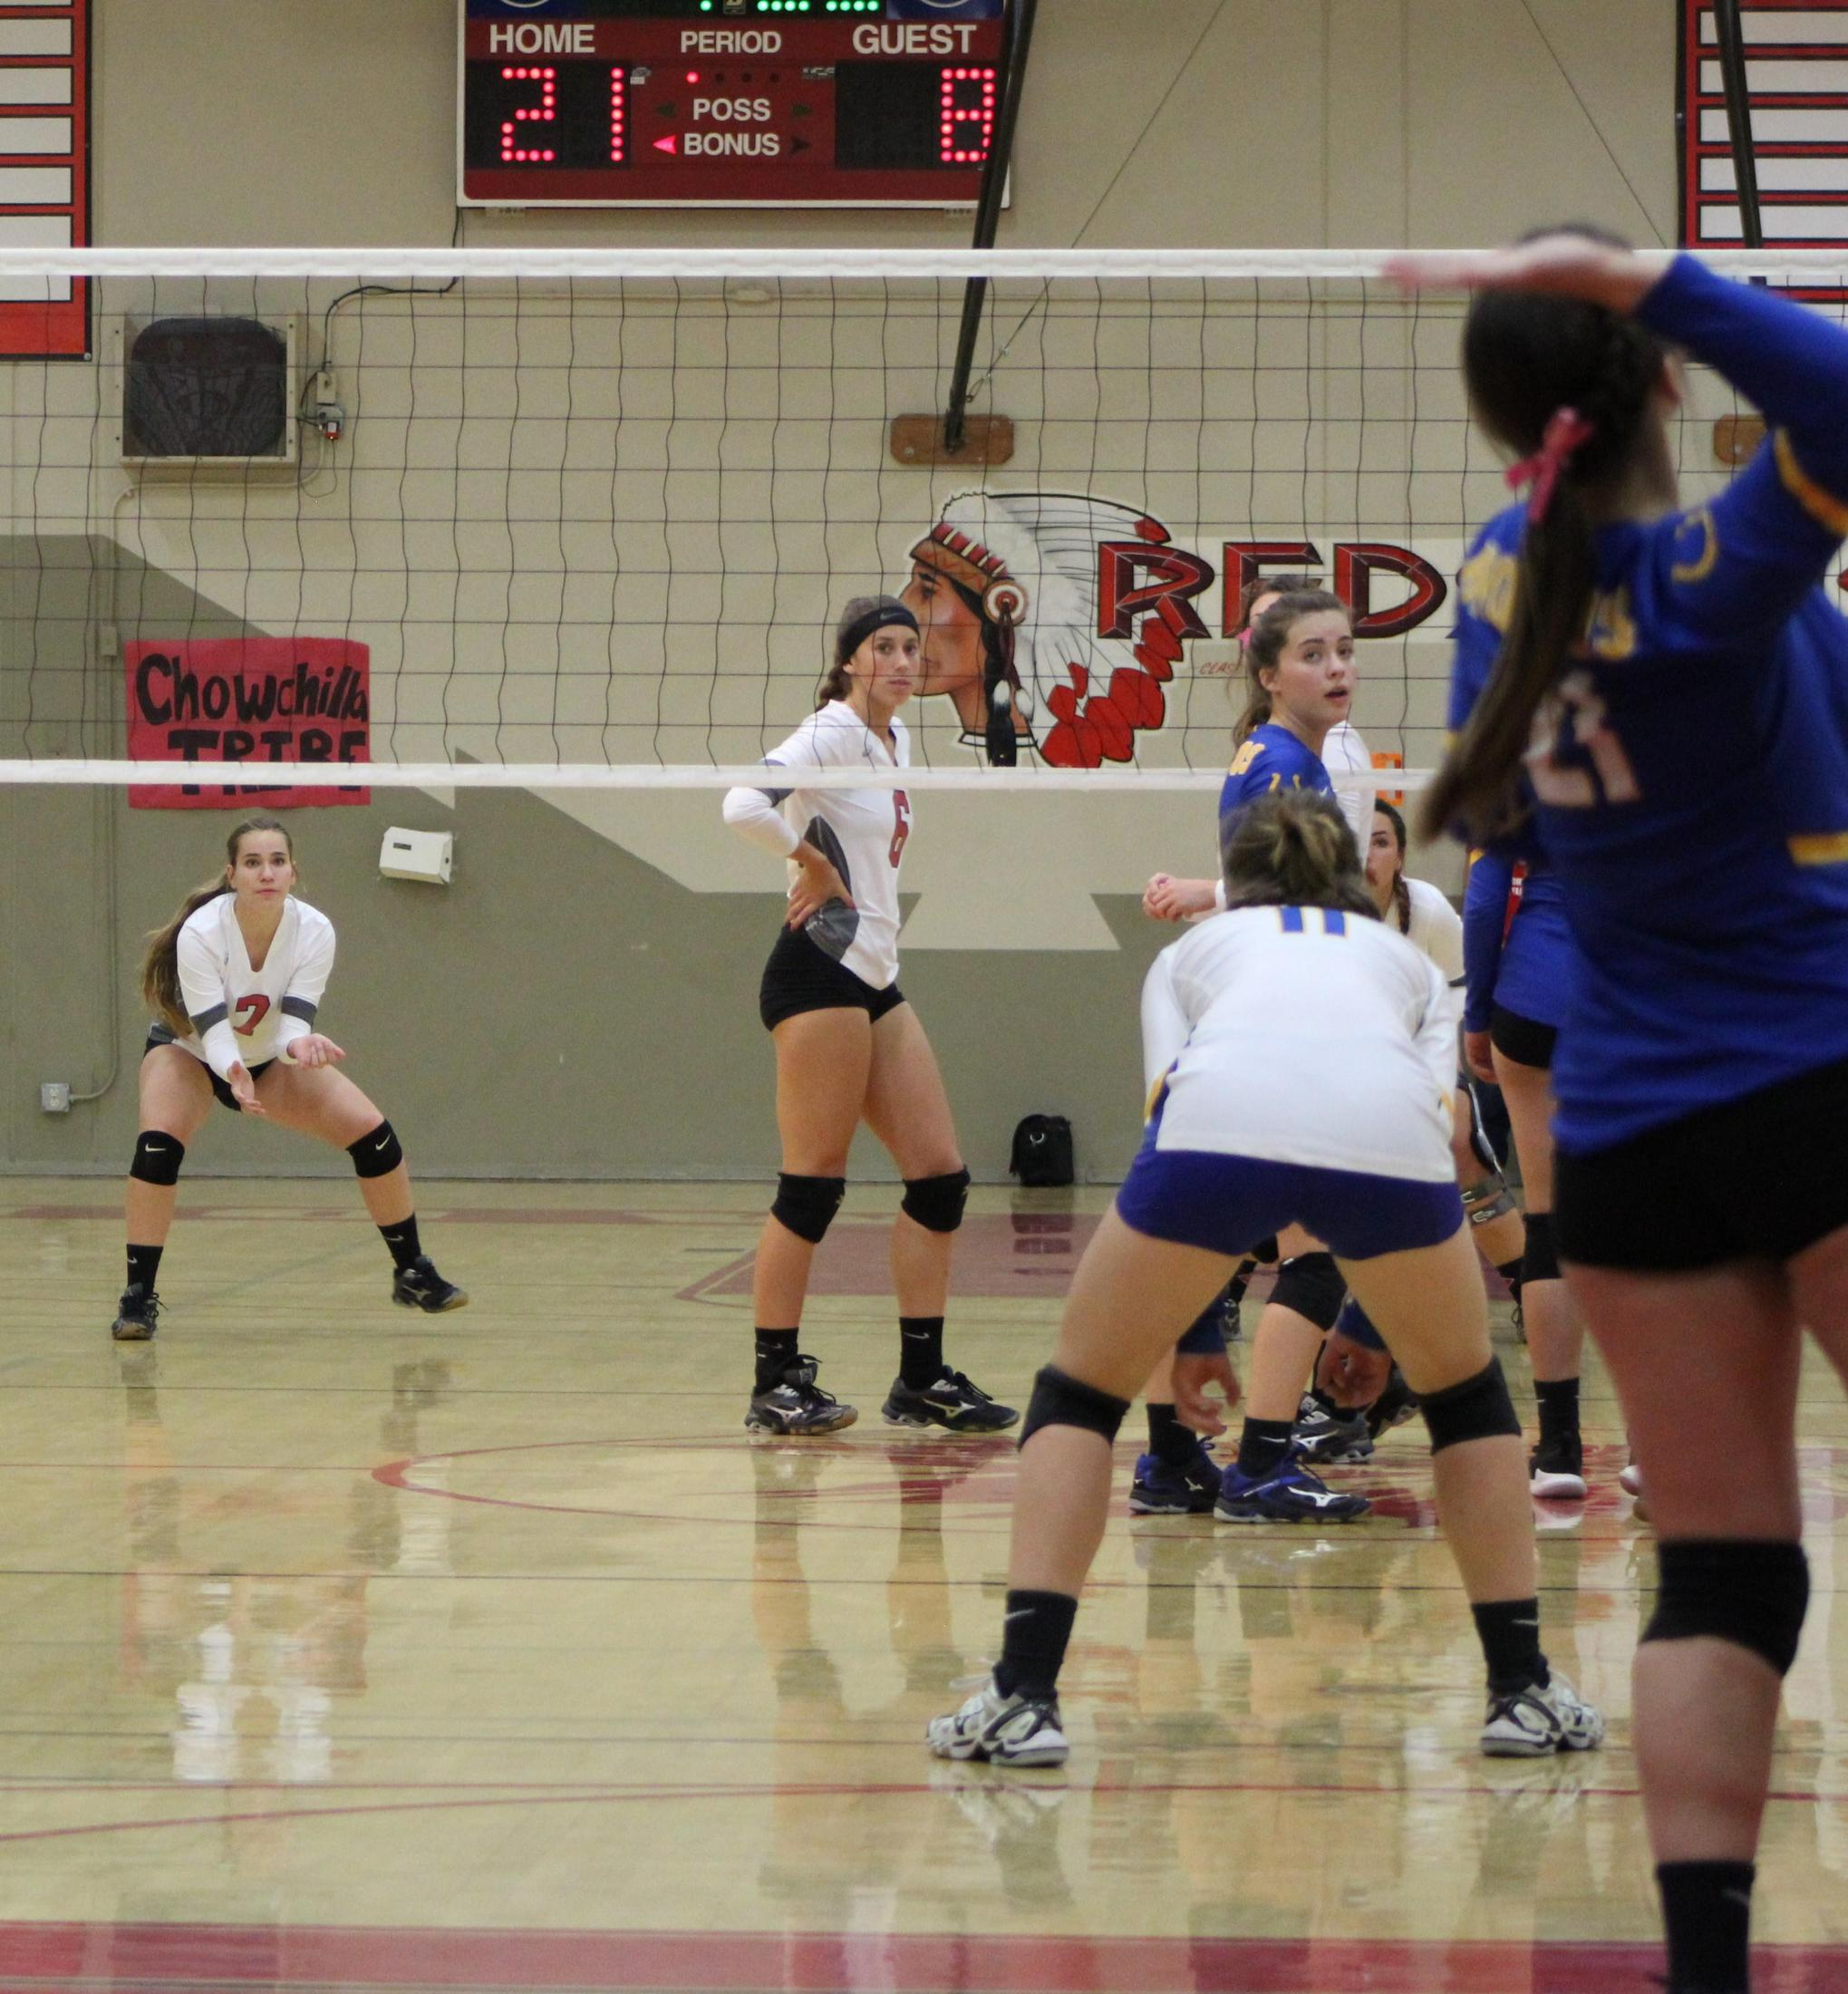 Girls playing volleyball against Dos Palos